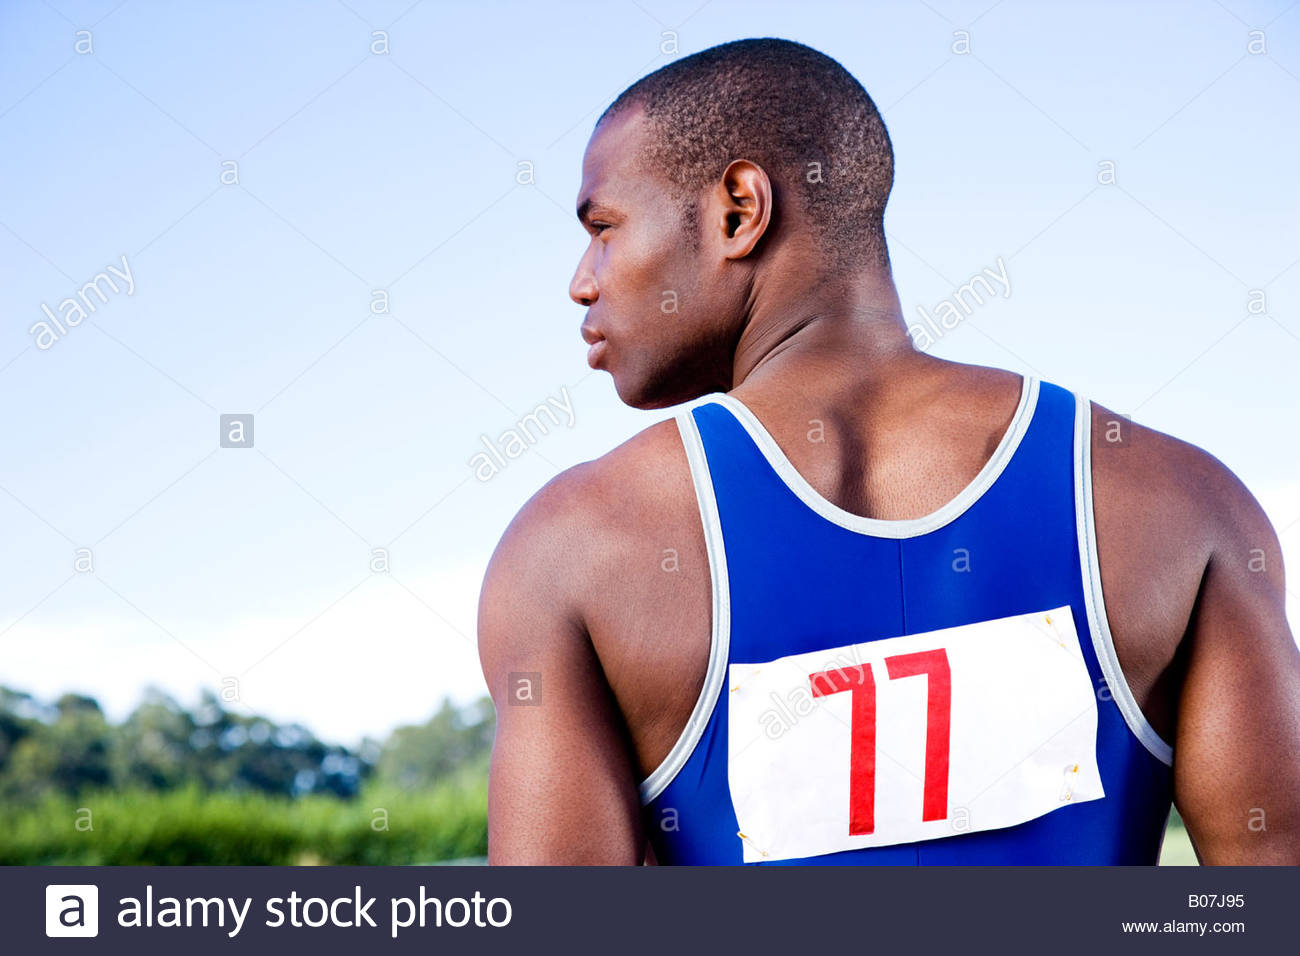 Rear view portrait of an athlete - Stock Image